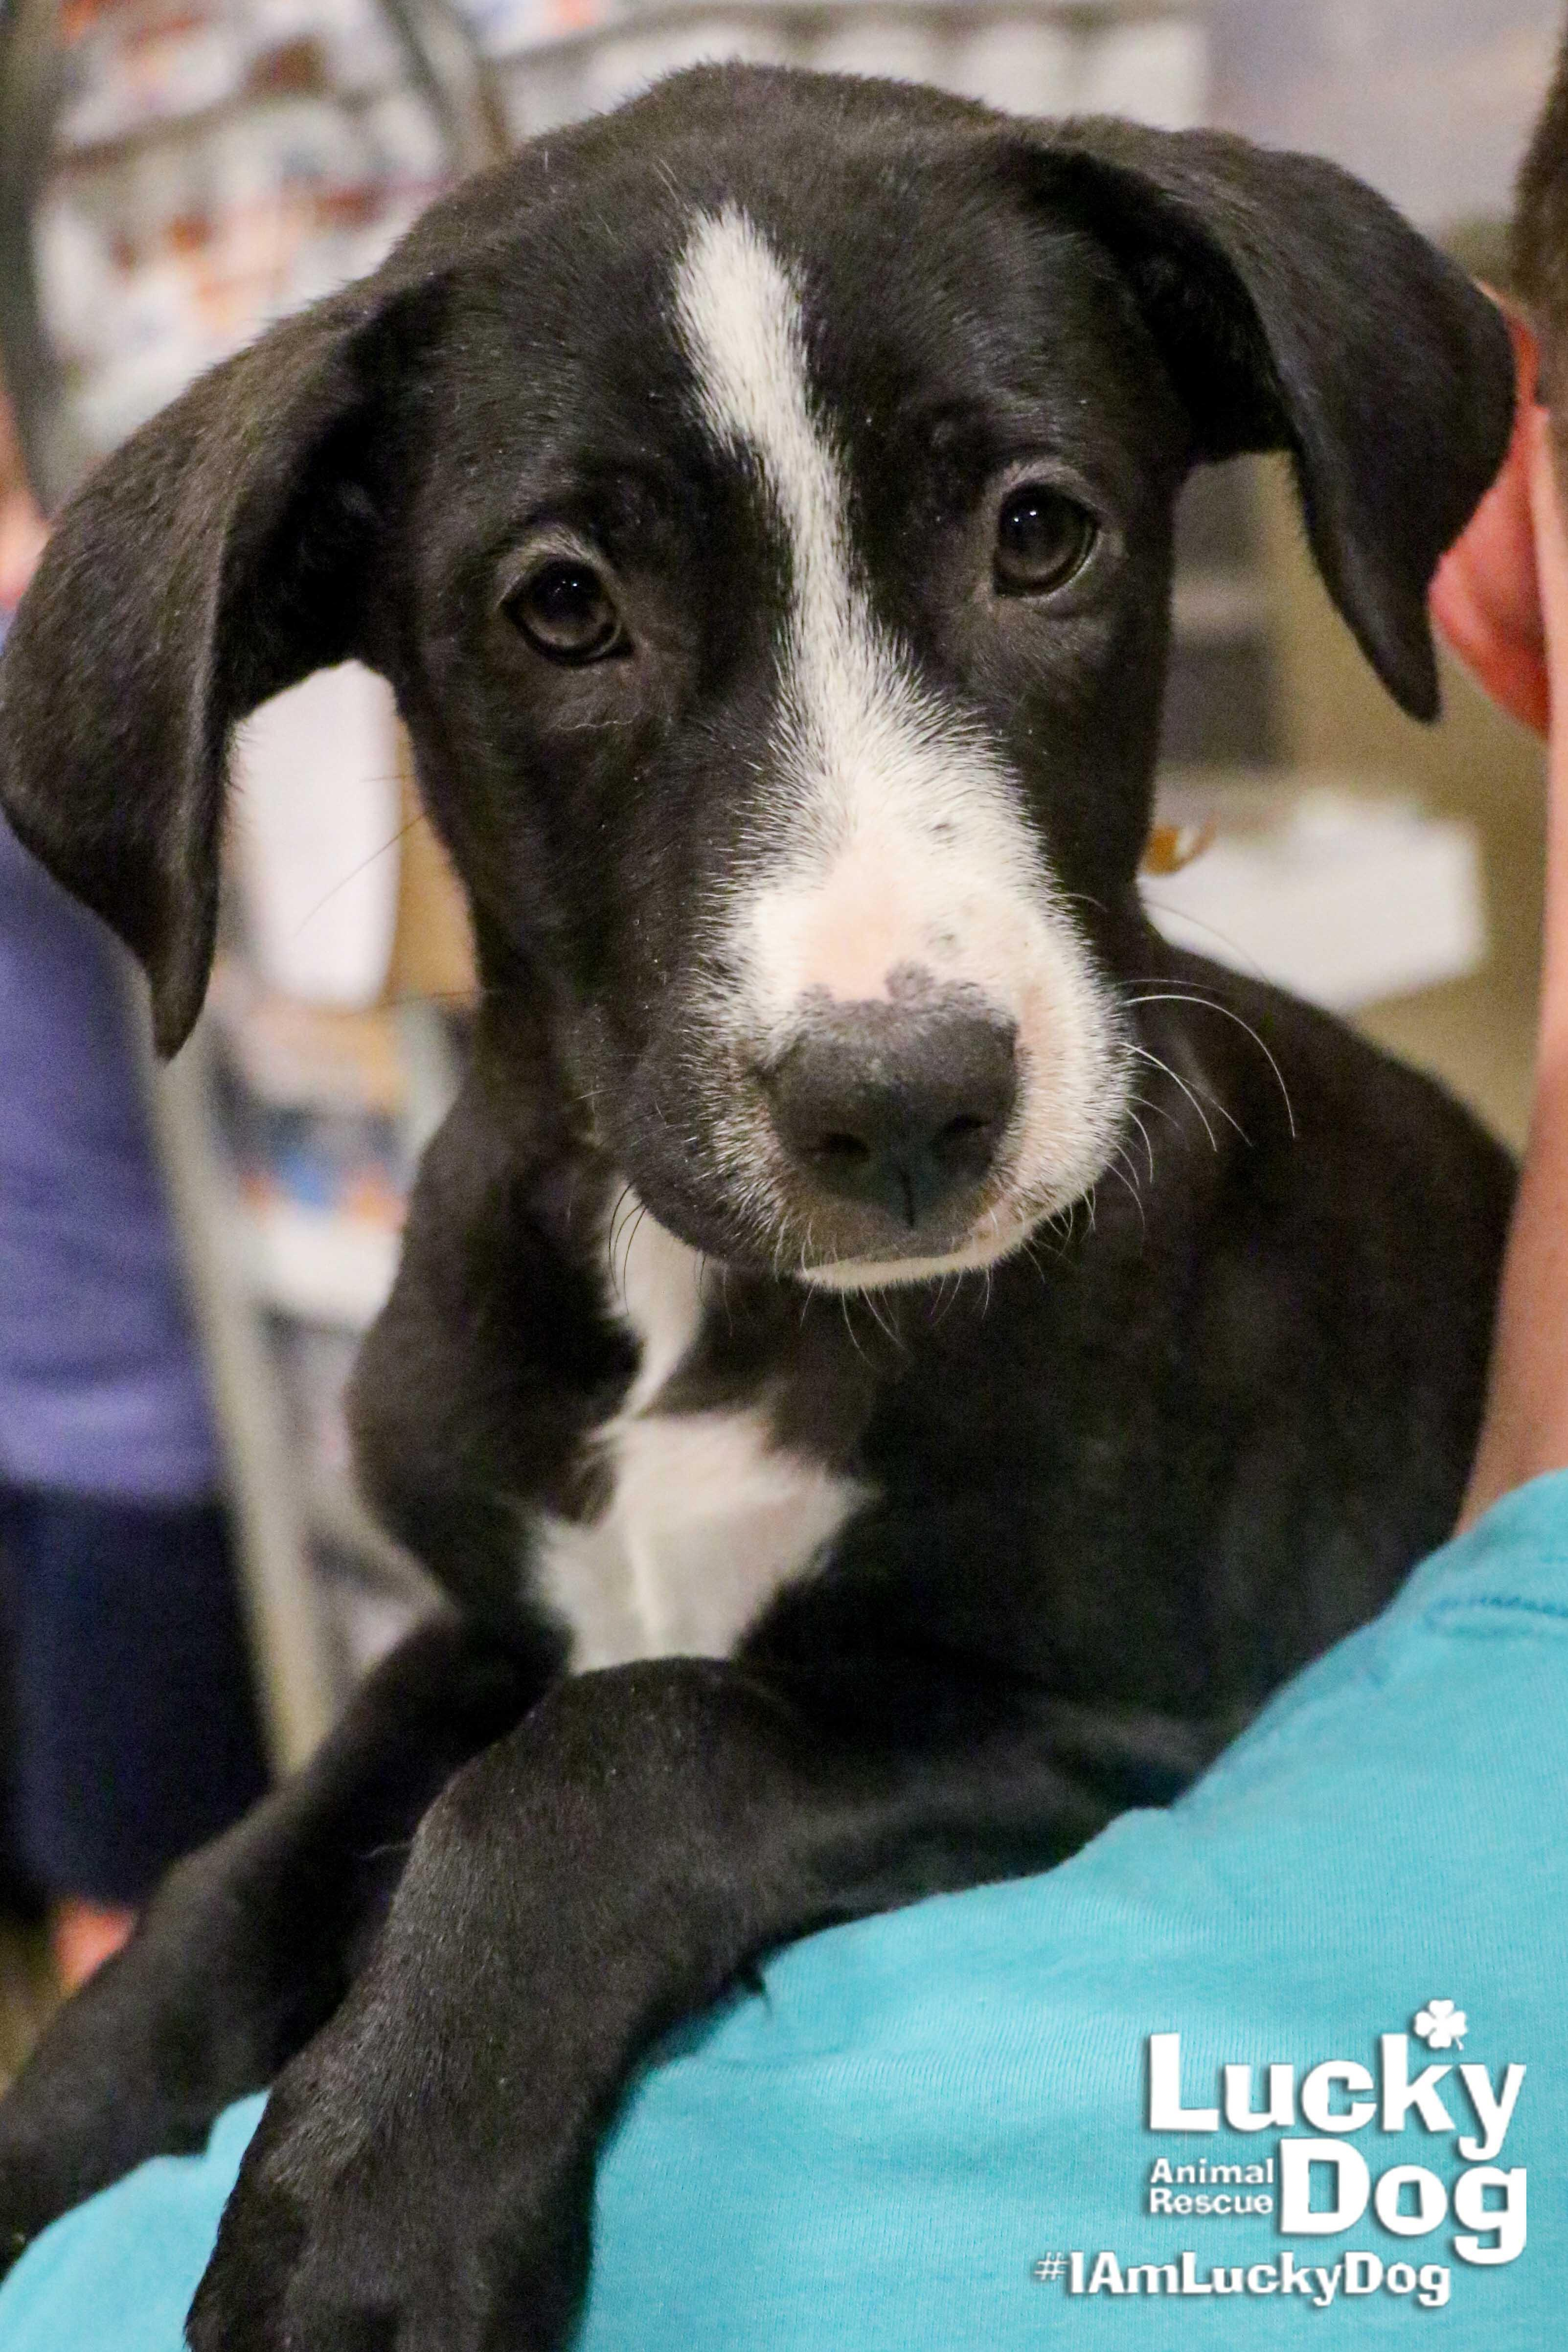 "DC Refined is currently seeking our 2018 class of ""Most Eligible Bachelors"" who will pose with adoptable dogs from our partner organization Lucky Dog Animal Rescue.  Our chosen gentlemen will get a mini photoshoot with one of Lucky Dog's adoptable puppers, such as 8-week-old Clara pictured here. If you're interested in participating in our eligible bachelors and adoptable dogs photoshoot, find out how you can participate here: https://bit.ly/2uDnjVQ"